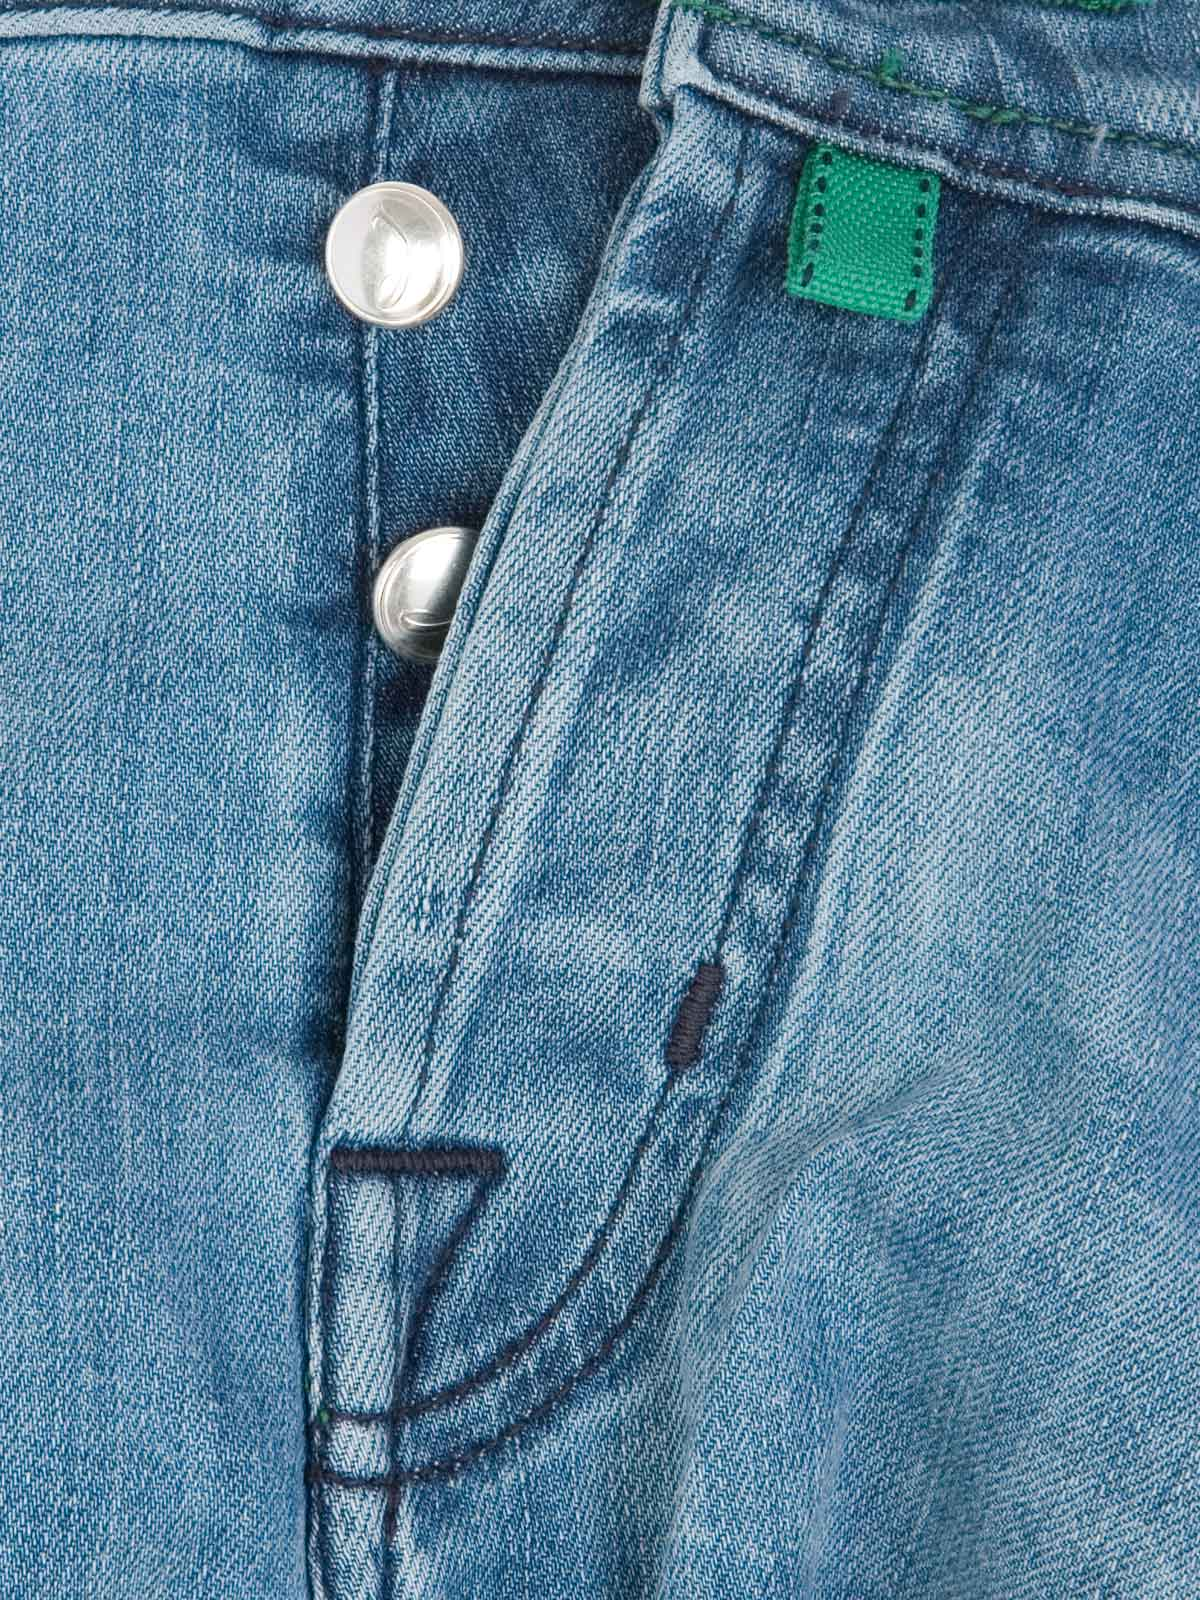 Picture of JACOB COHEN | Comfort Stretch 5 Pockets Jeans